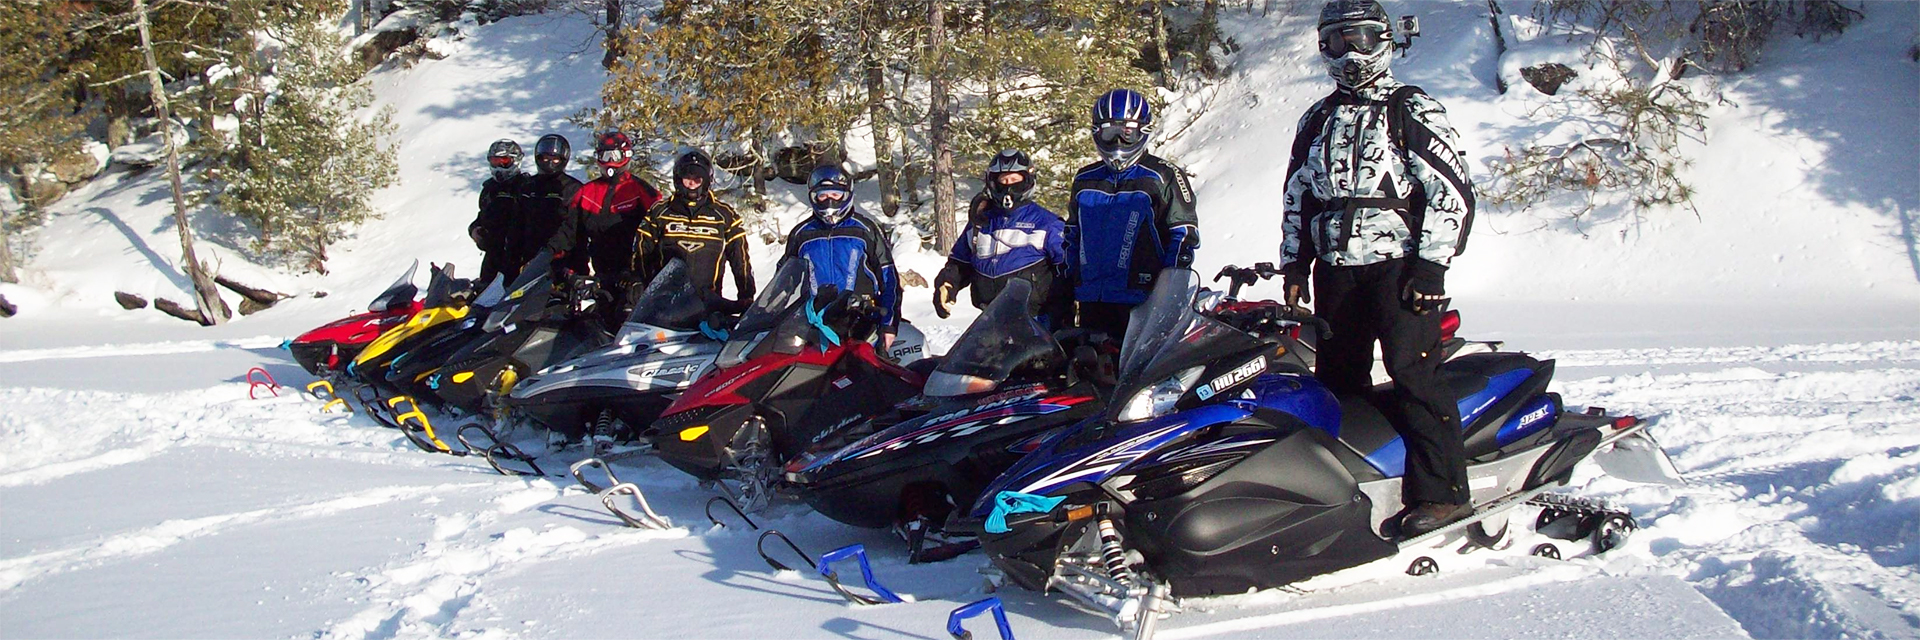 Eight snowmobiles and riders stand in a row in the snow